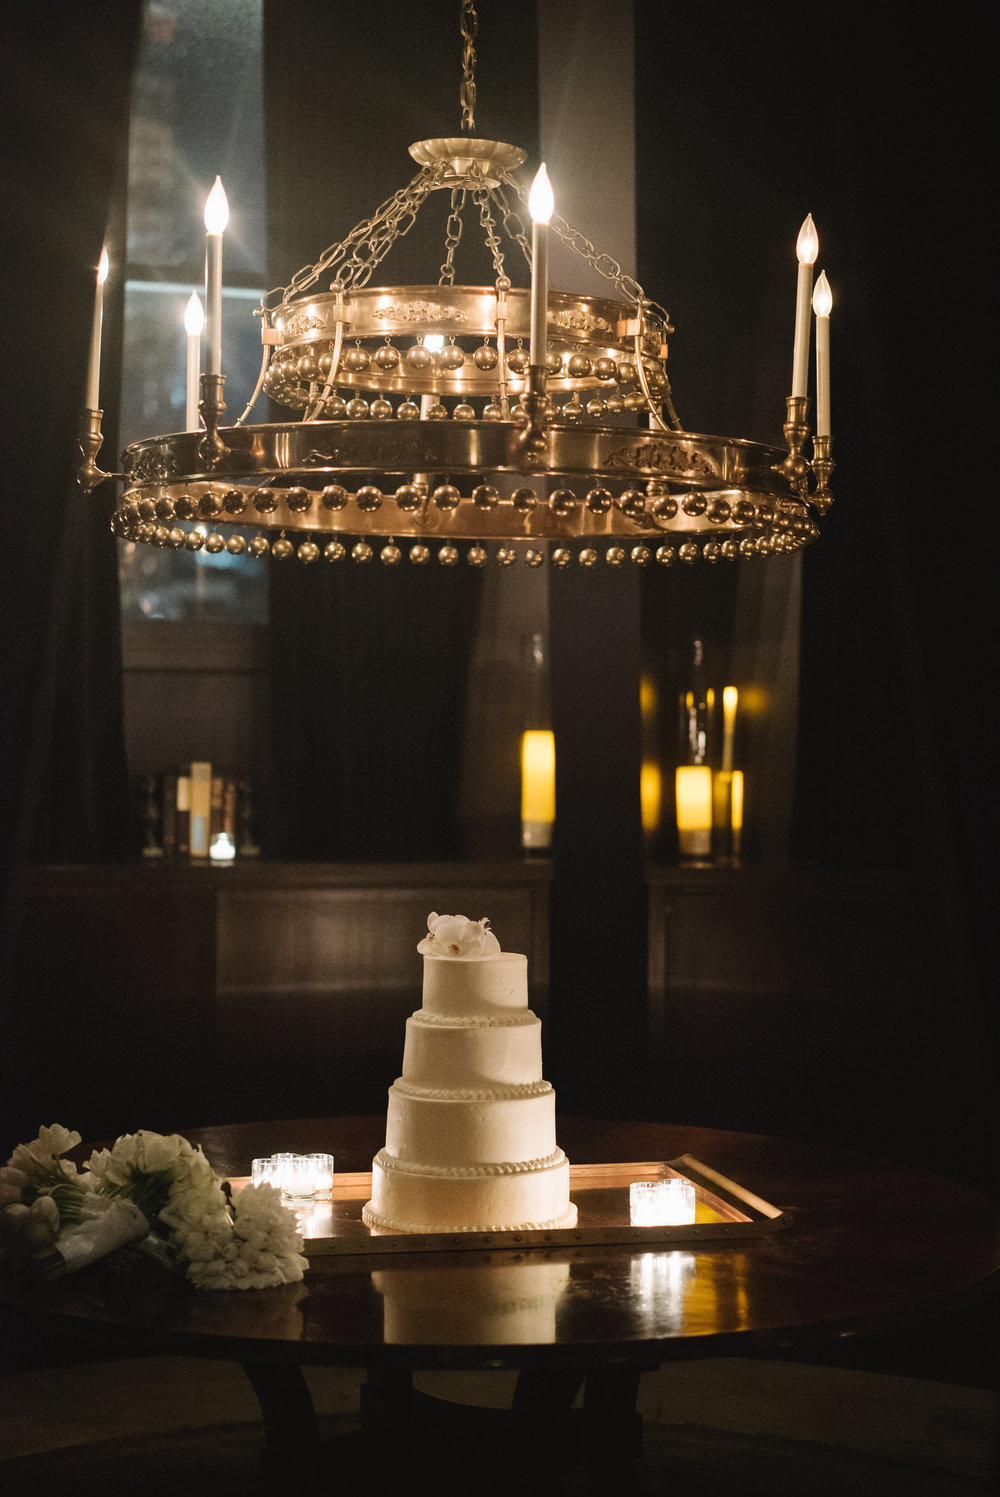 CAKE DISPLAYED IN THE CUPOLA